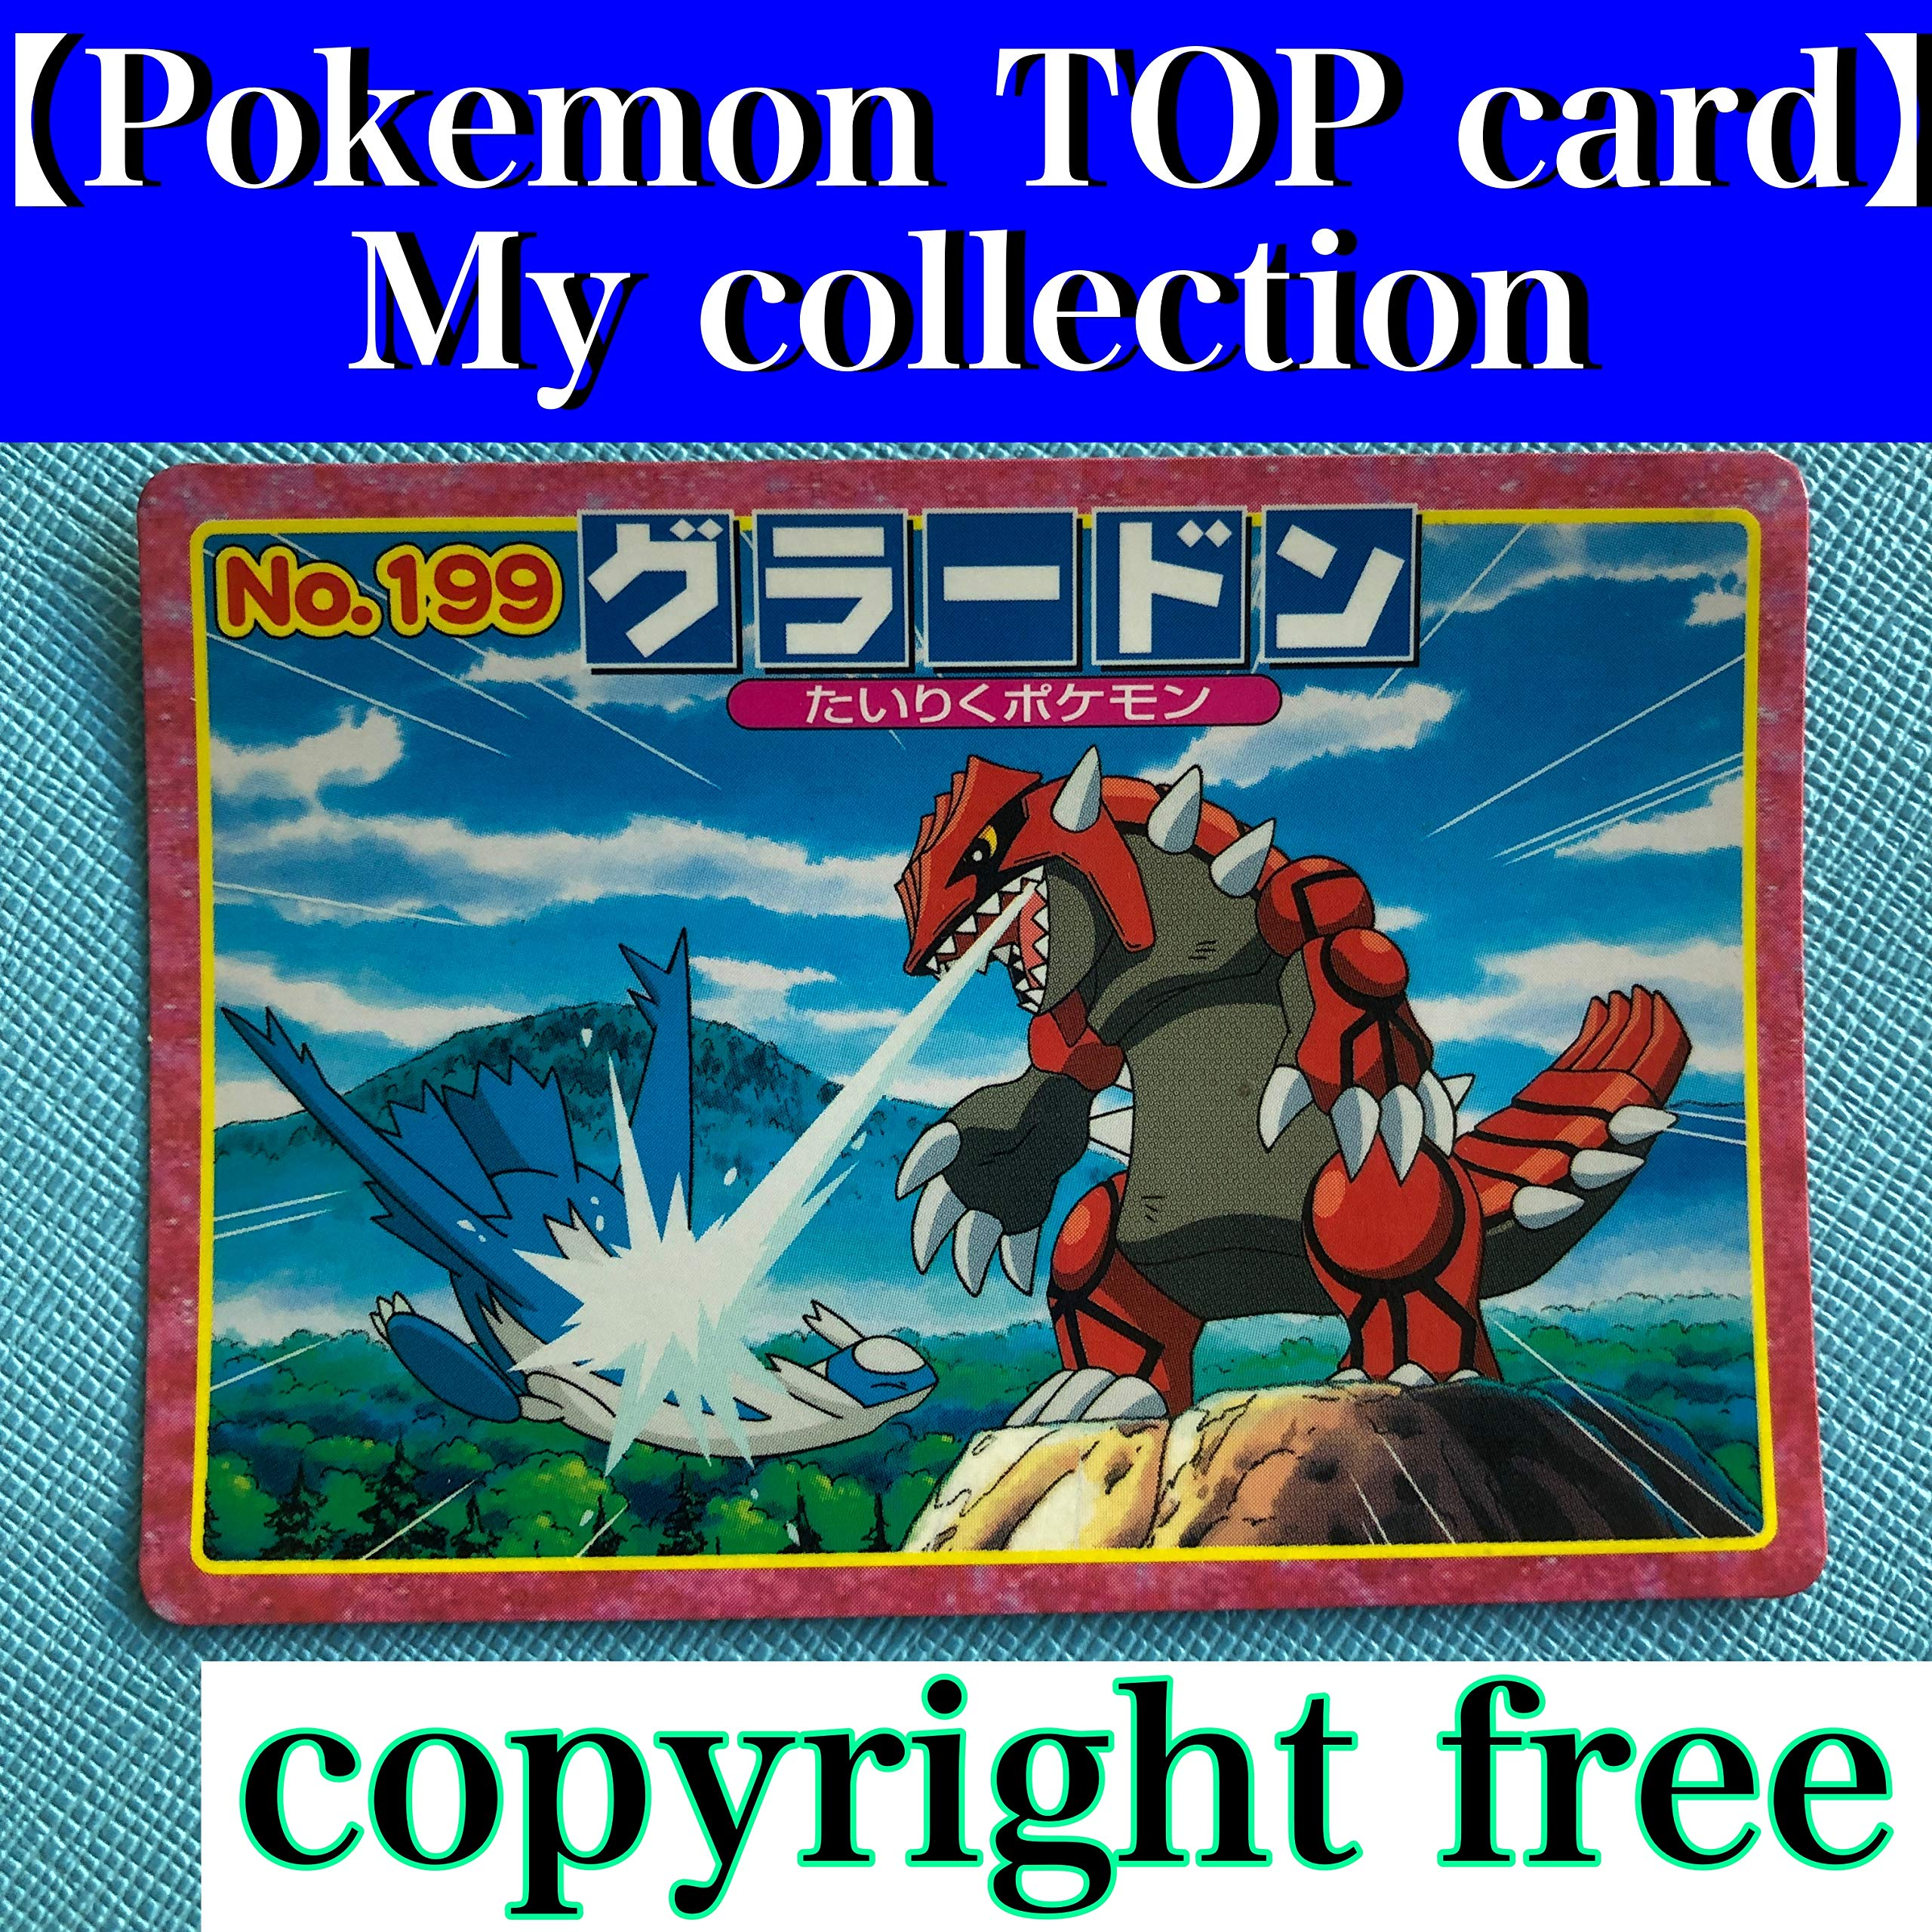 【Pokemon TOP card】My collection Japanese collector Photo Book Vintage copyright free